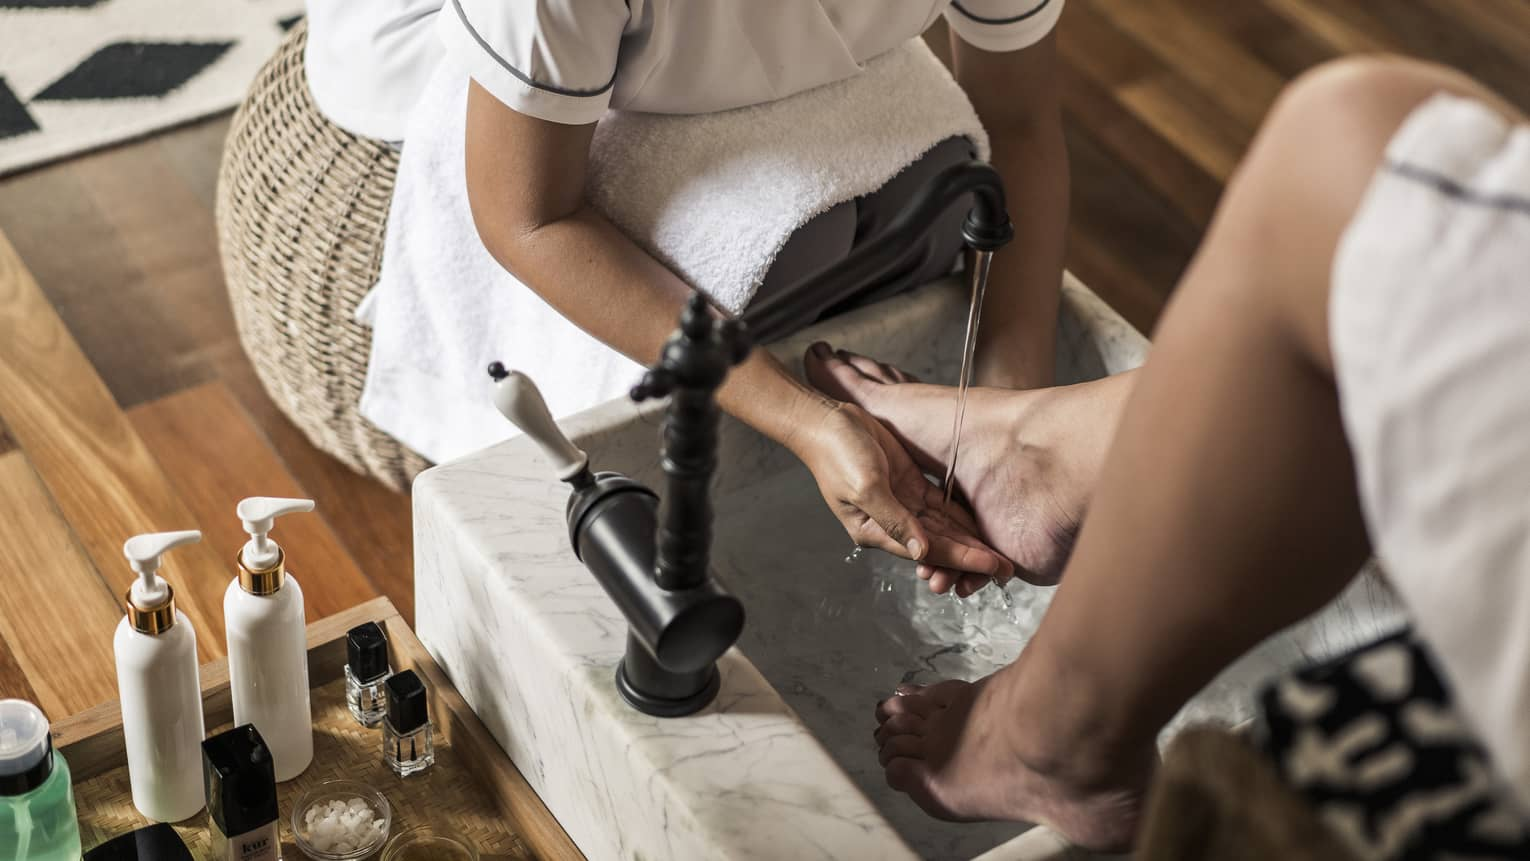 Spa staff sits on wicker stool, rinses woman's feet at pedicure station